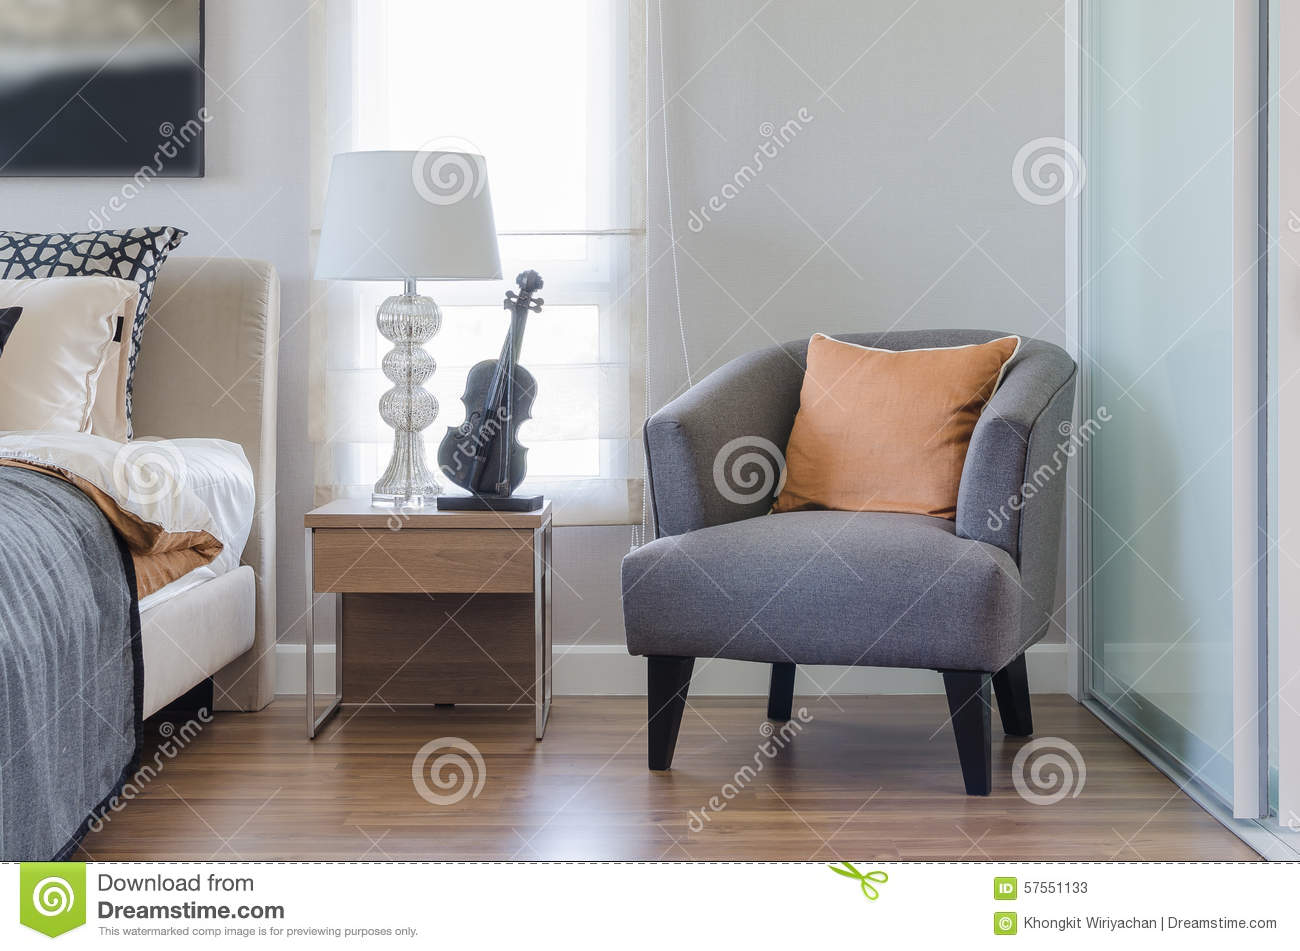 Orange Pillow On Modern Grey Chair With Bedside Table And